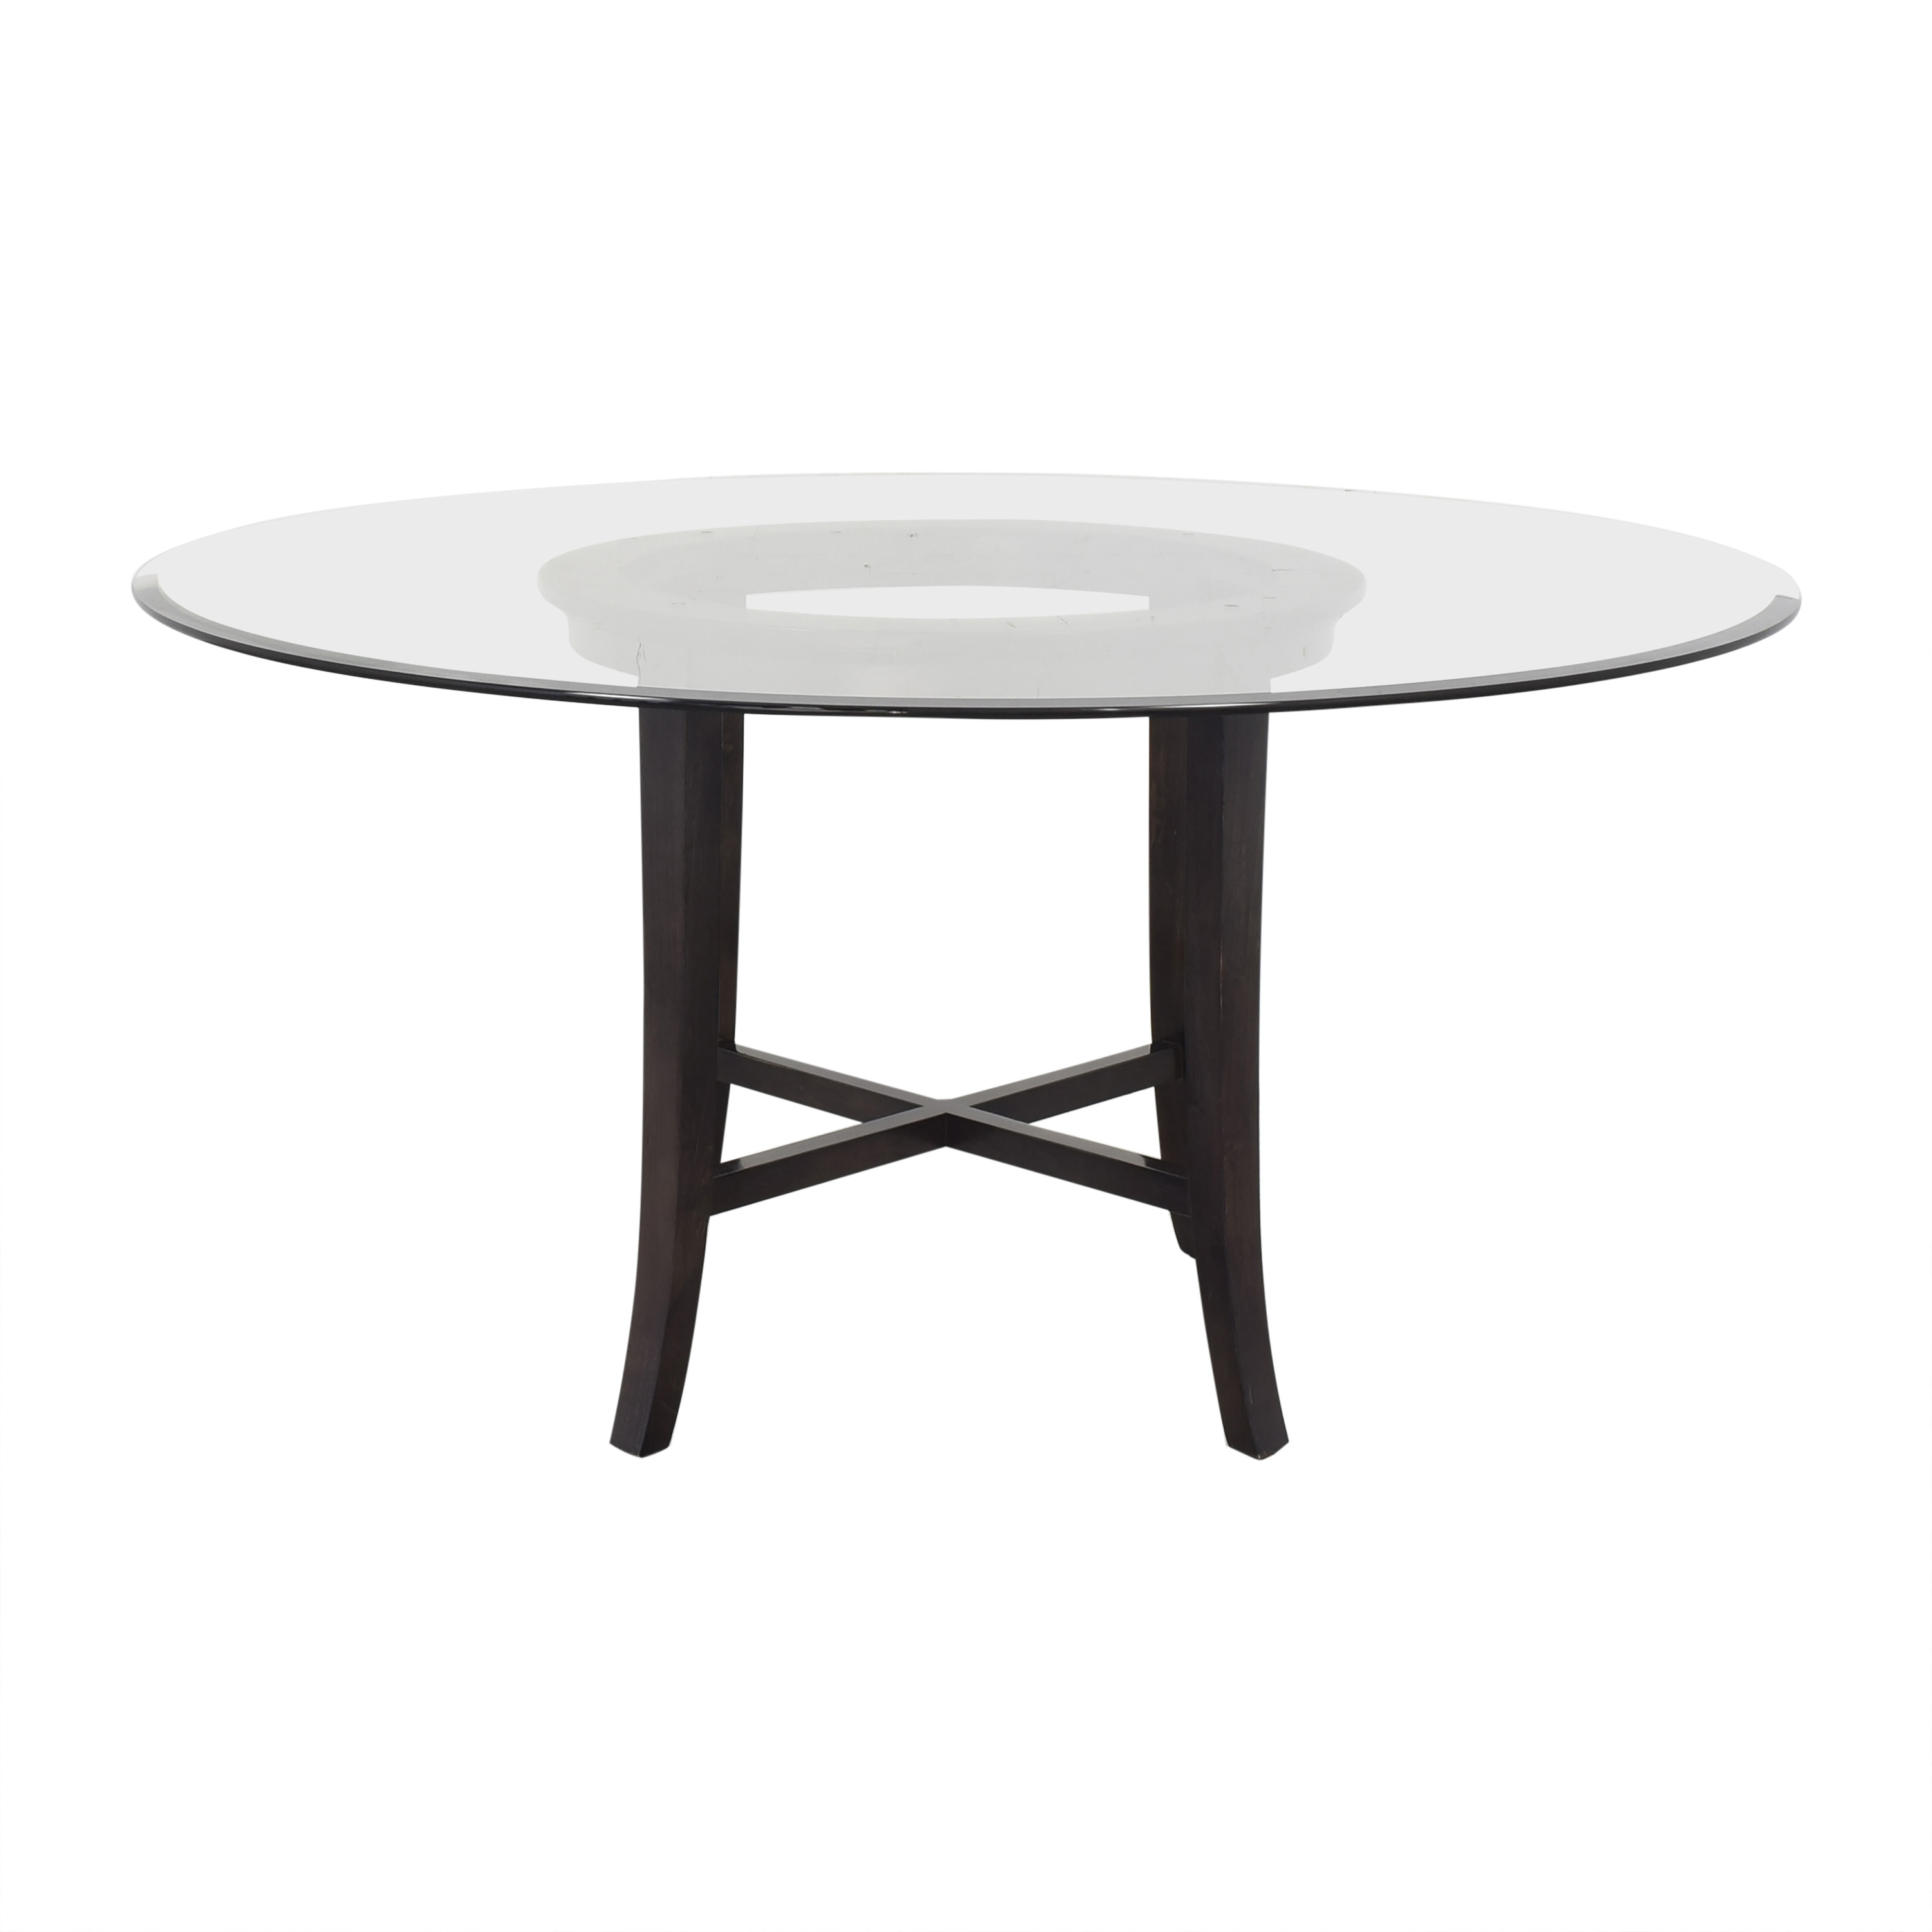 Crate & Barrel Crate & Barrel Halo Round Dining Table with Glass Top price